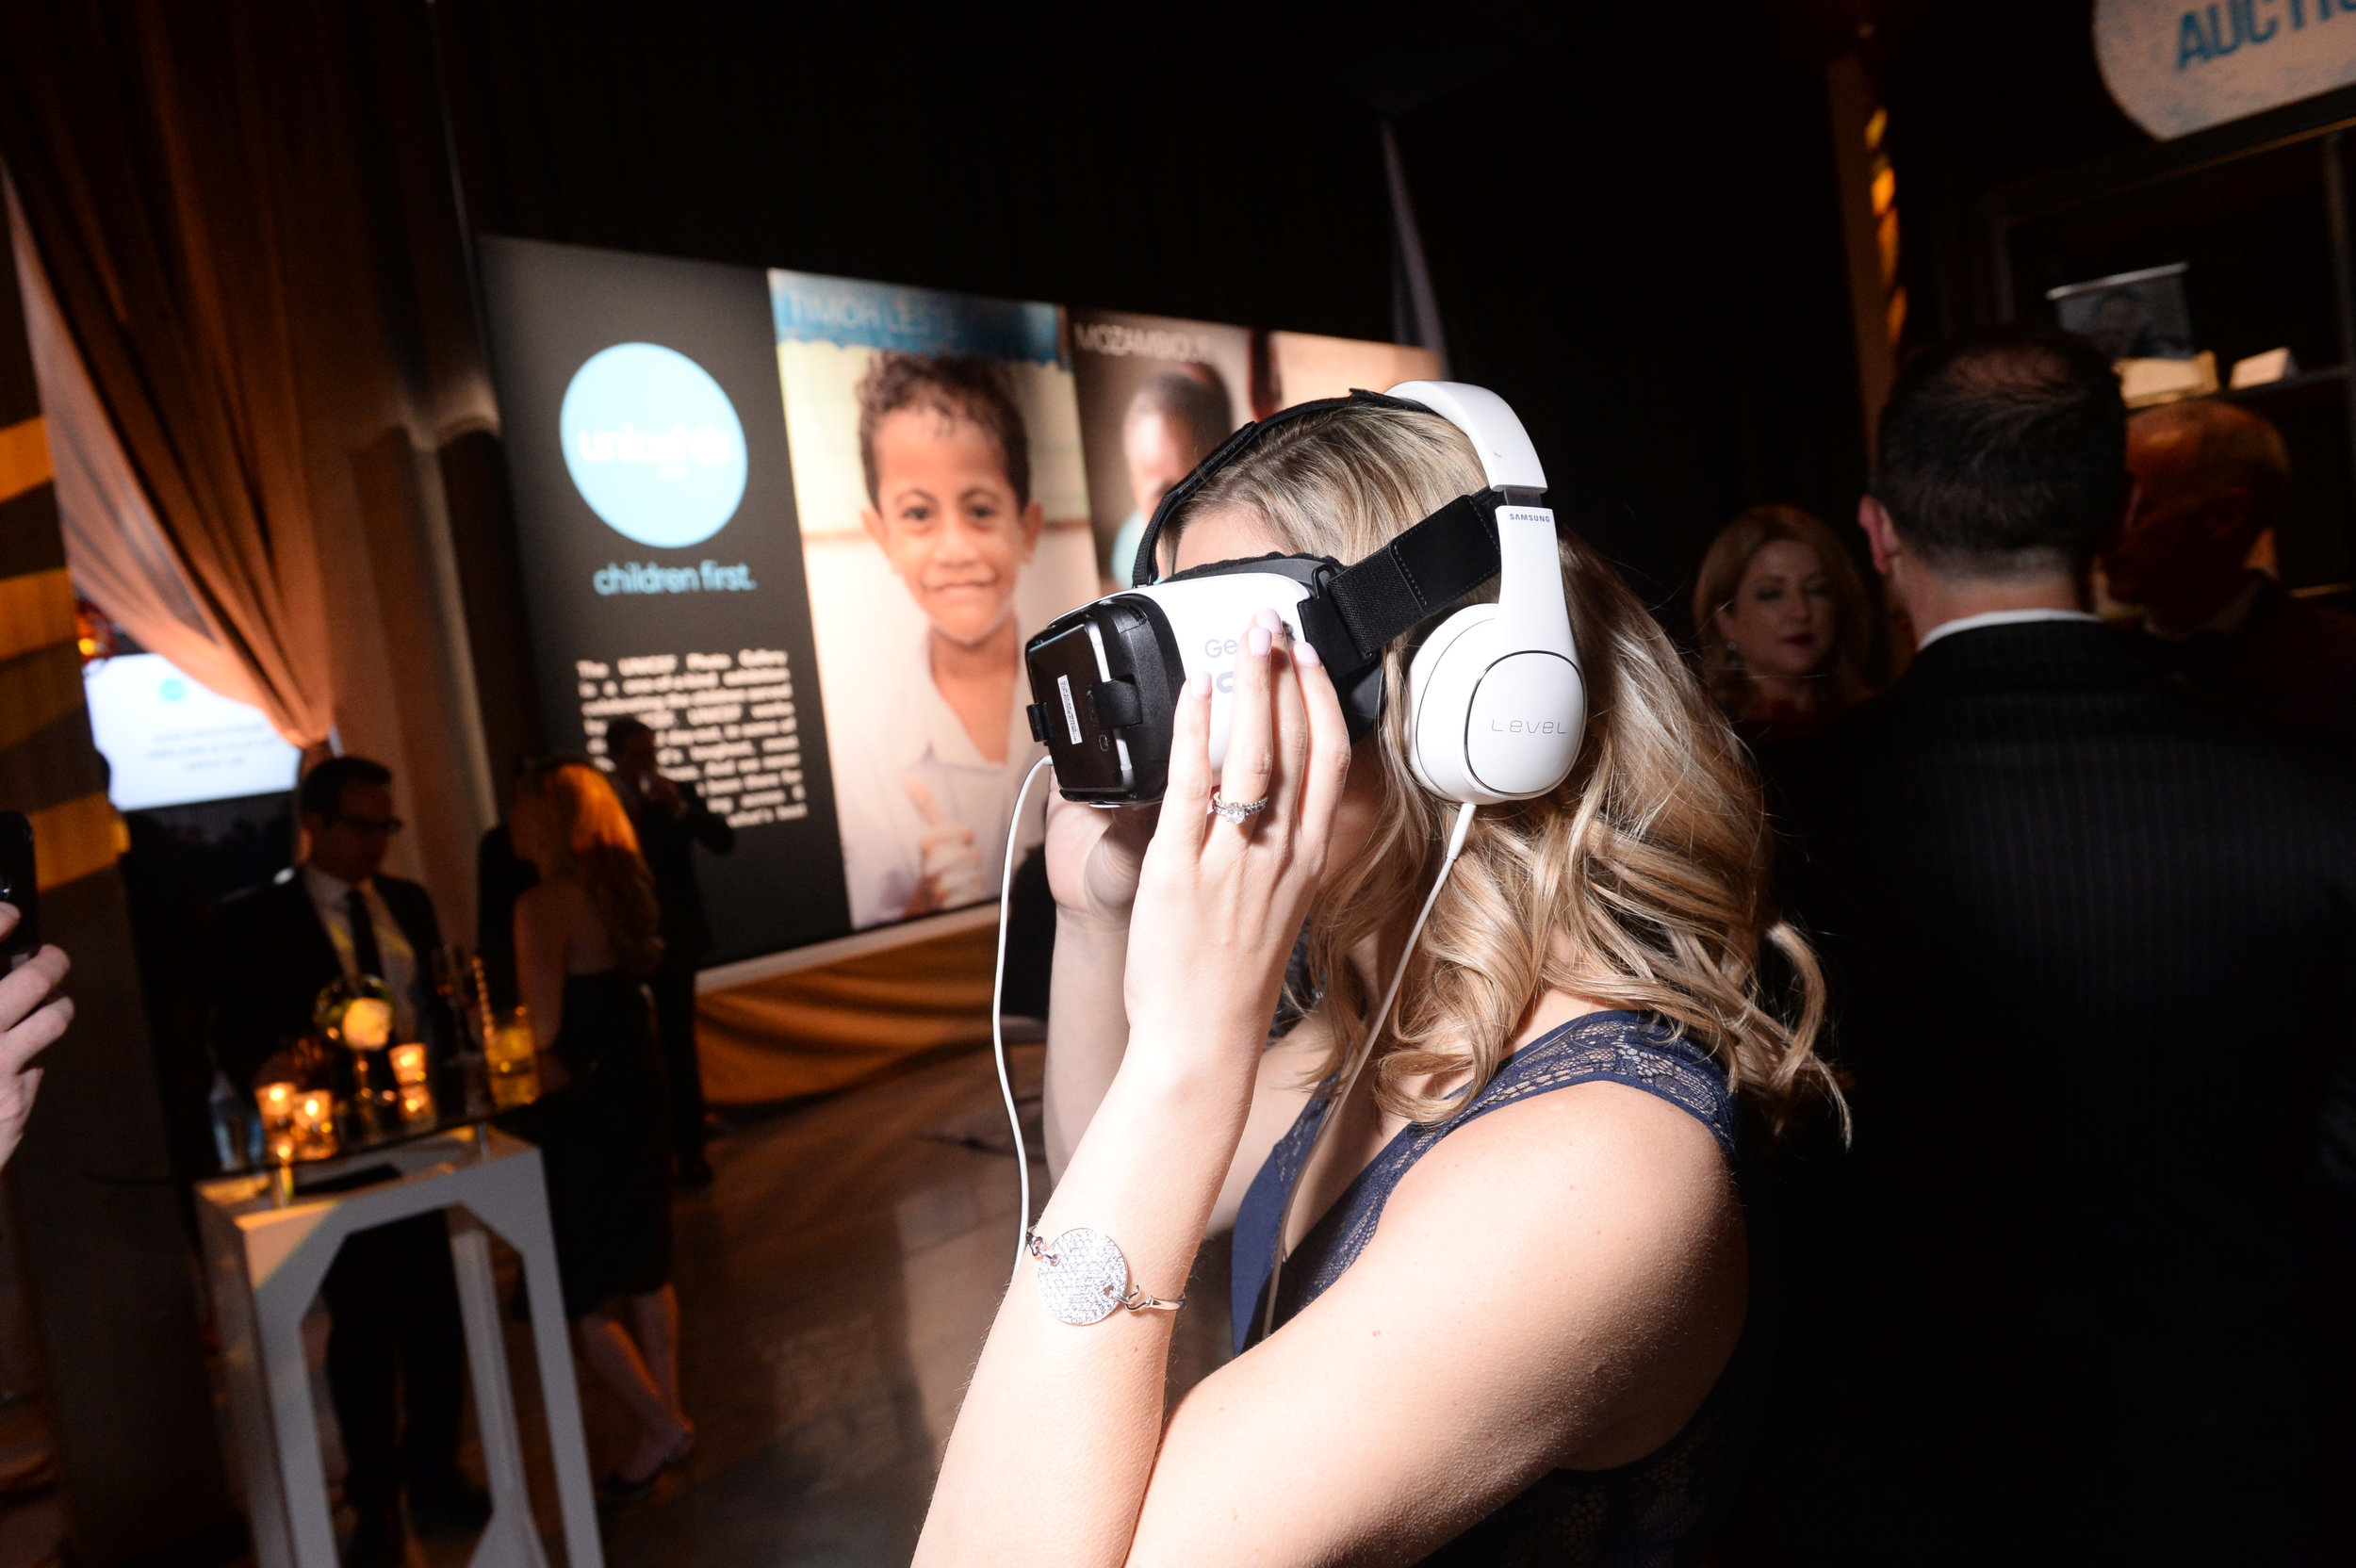 A guest enjoys a VR experience at the UNICEF Gala Chicago 2018. Photo Credit: Daniel Boczarski/Getty Images for UNICEF